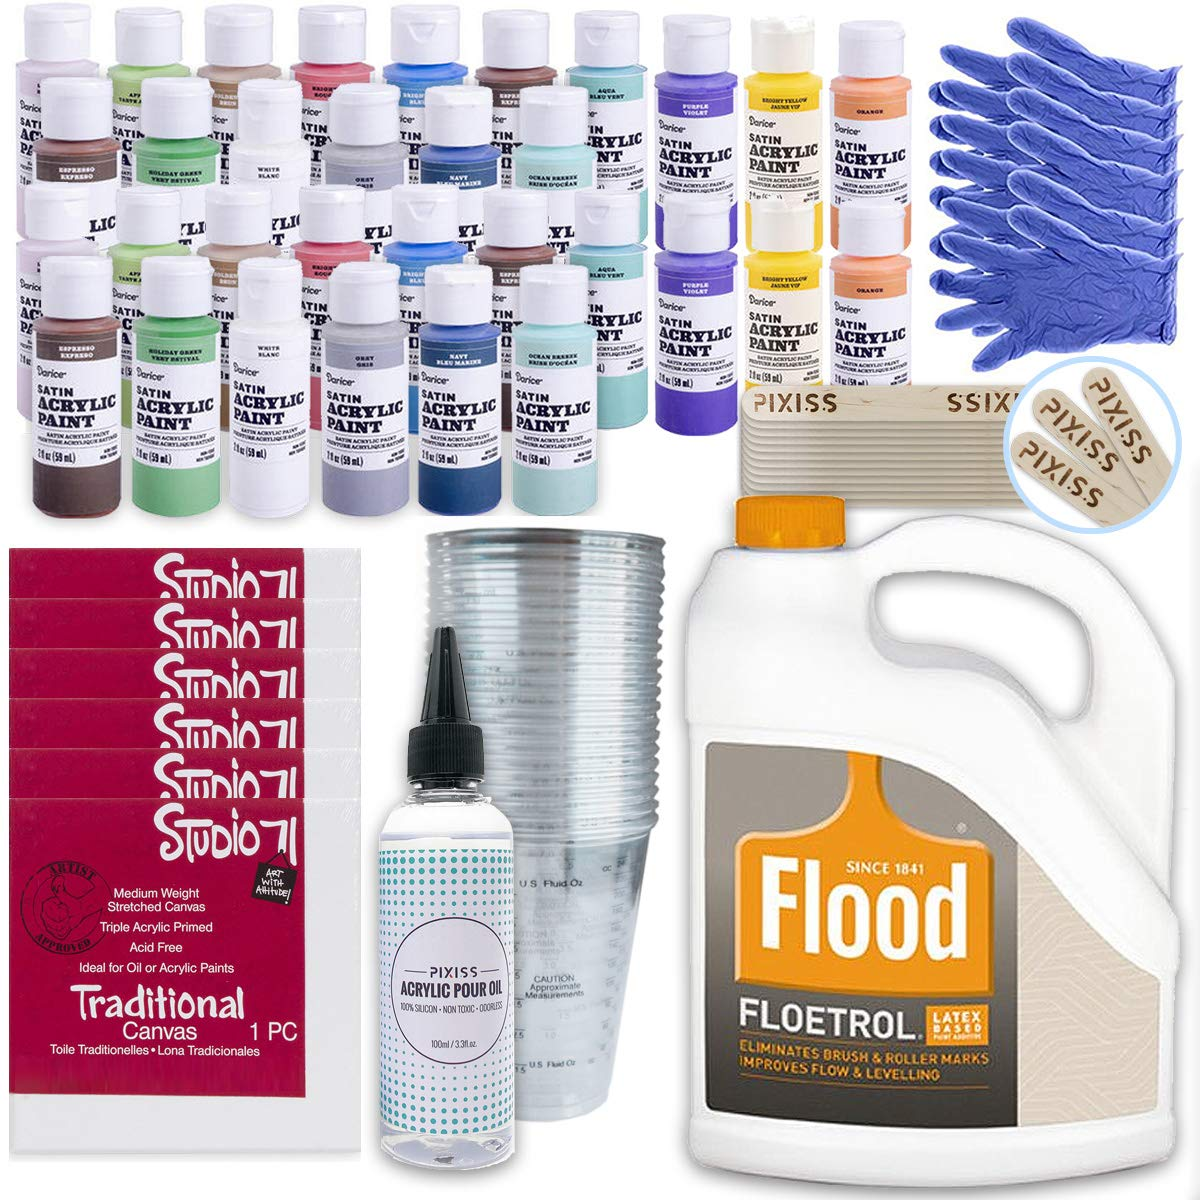 Ultimate Acrylic Paint Pouring Bundle - 1 Gallon Floetrol, 50x Cups, 32x 2-Ounce Acrylic Paints, 5X5-inch Canvases, Pixiss Acrylic Pouring Oil, Mixing Sticks, Gloves, Complete Kit for Paint Pouring